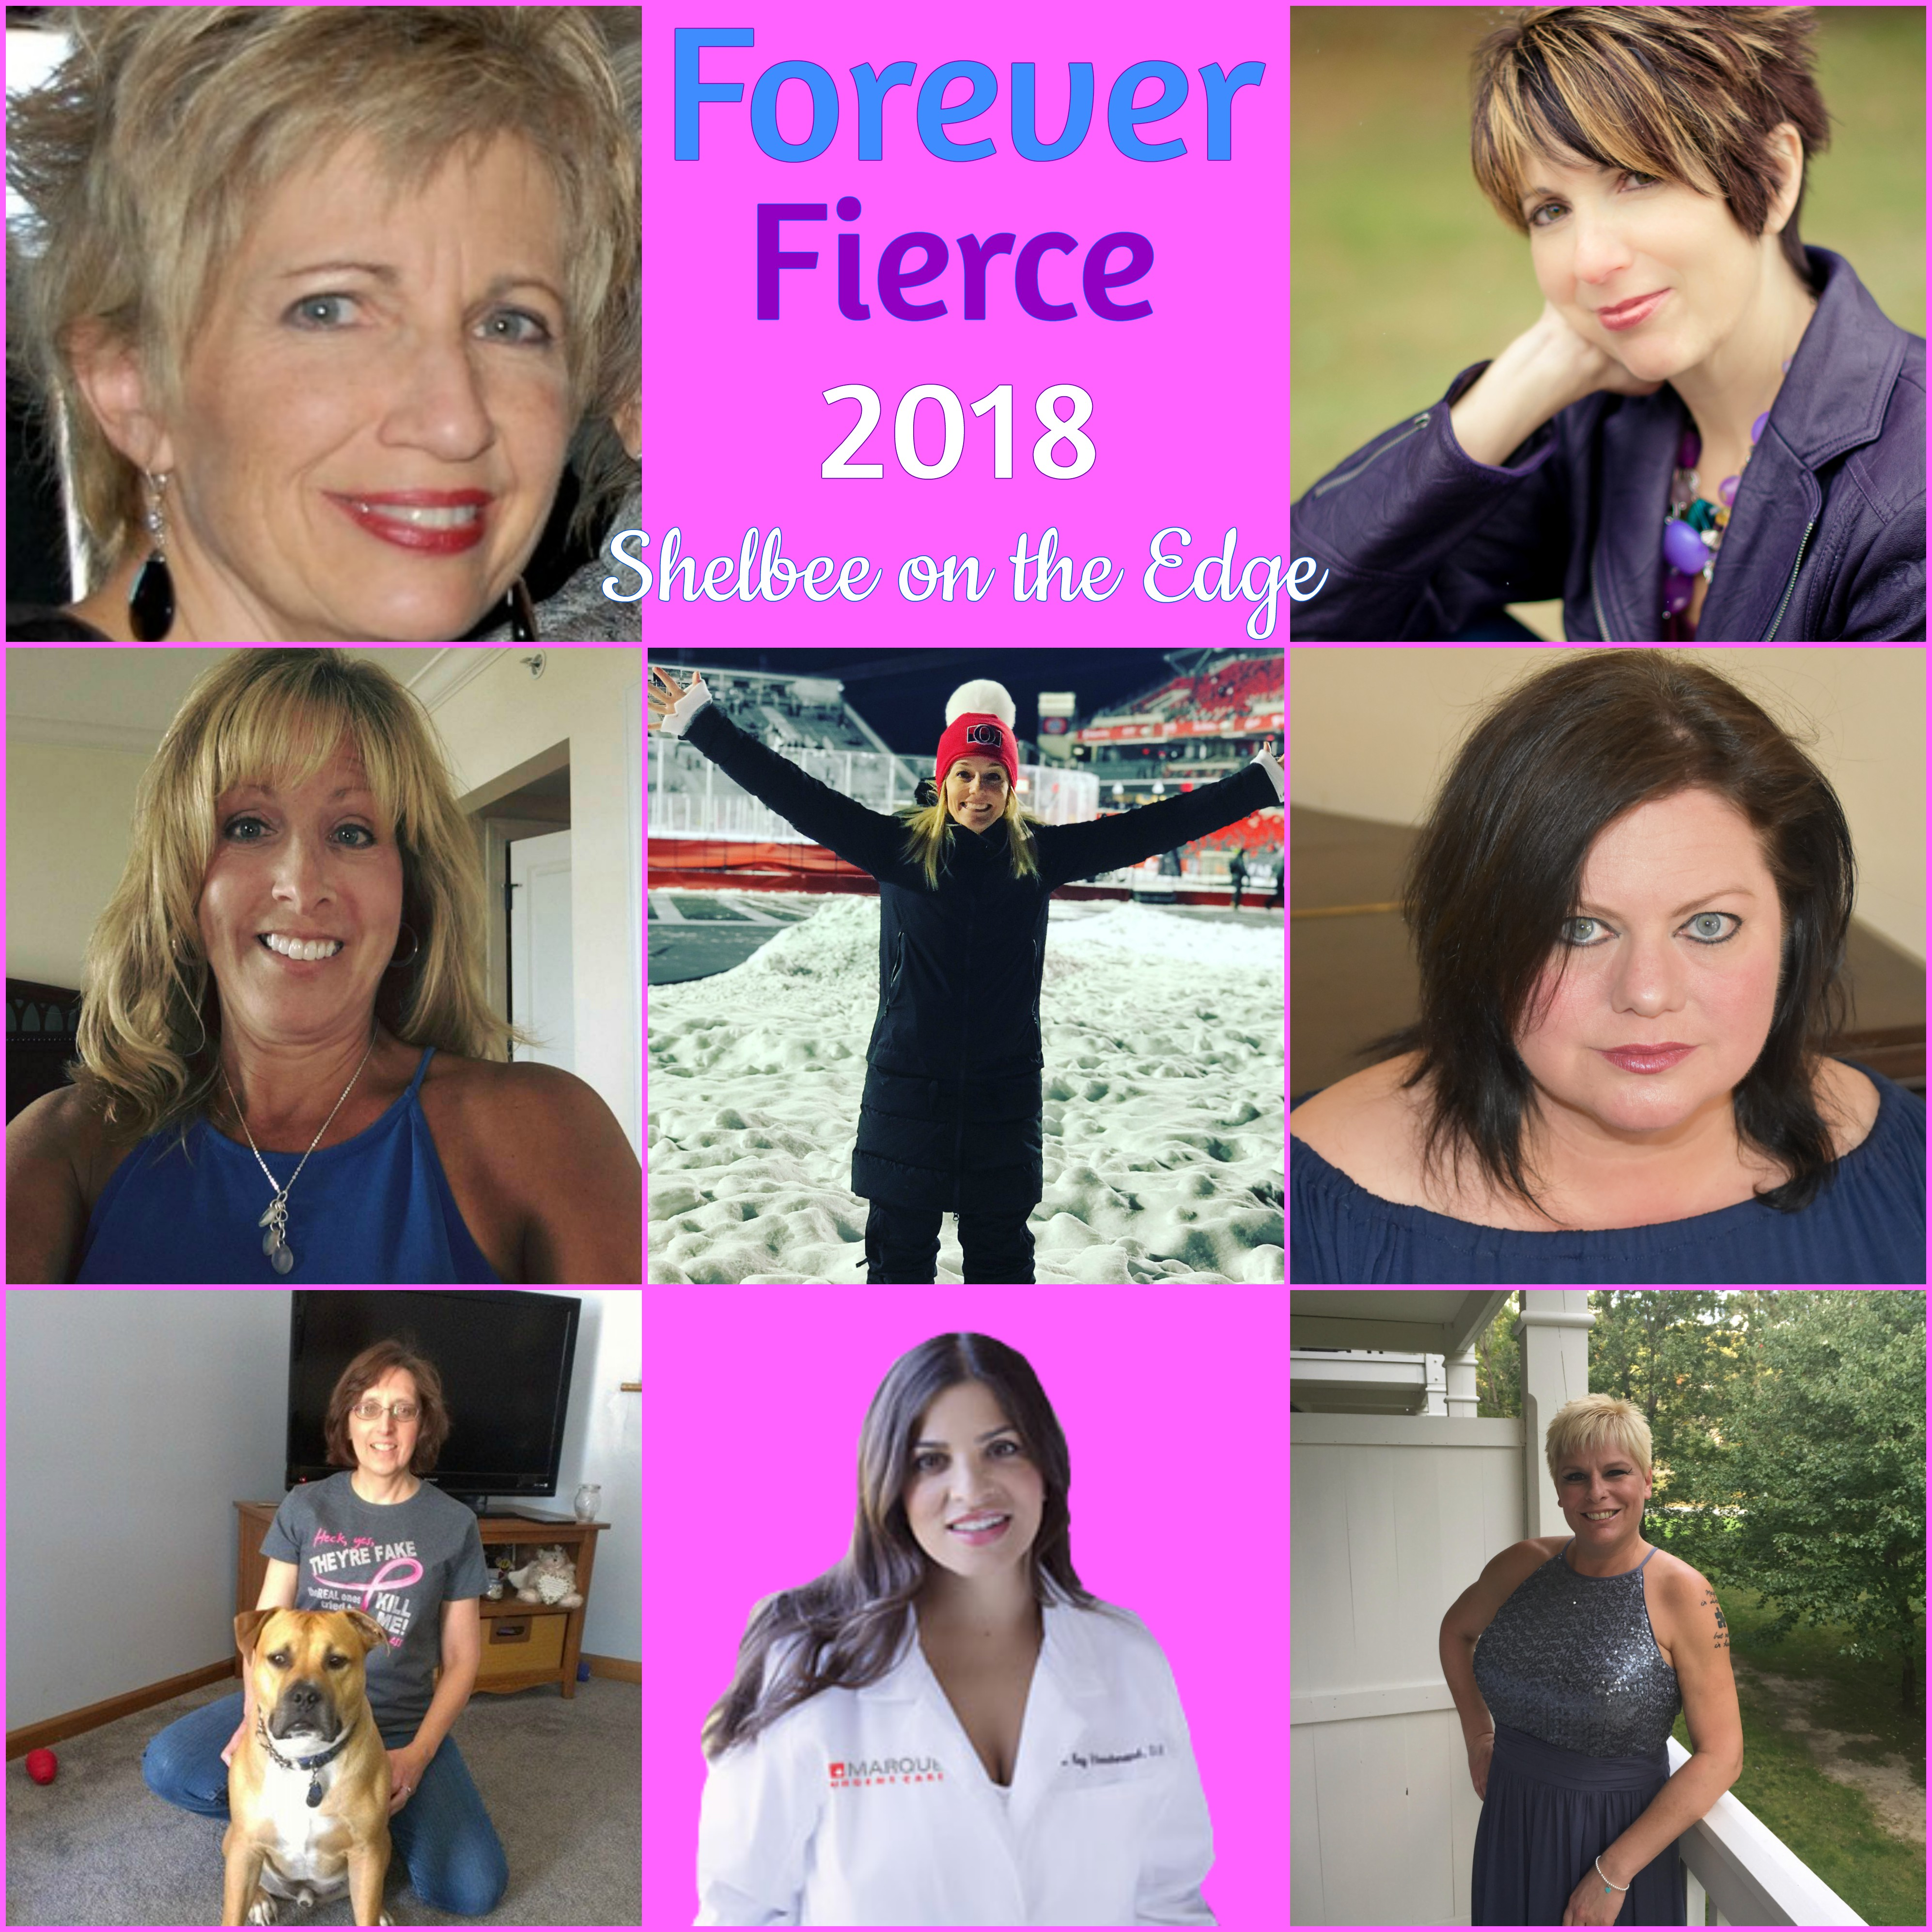 Forever Fierce 2018: Midlife Women on Being Fierce